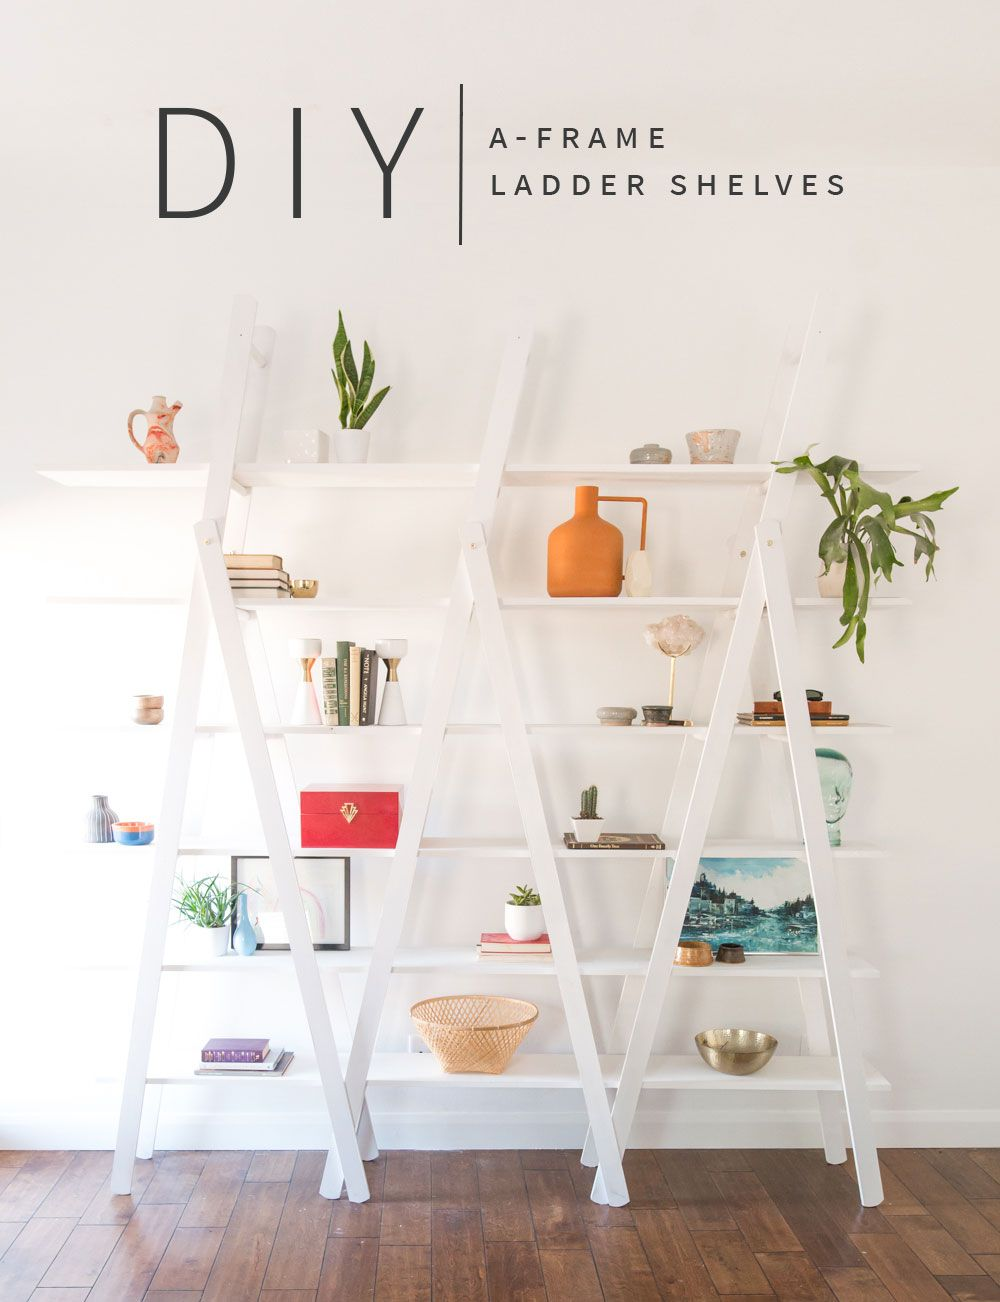 Hey Möbel Diy Ladder Shelves D I Y S T U F F Diy Ideen Möbel Diy